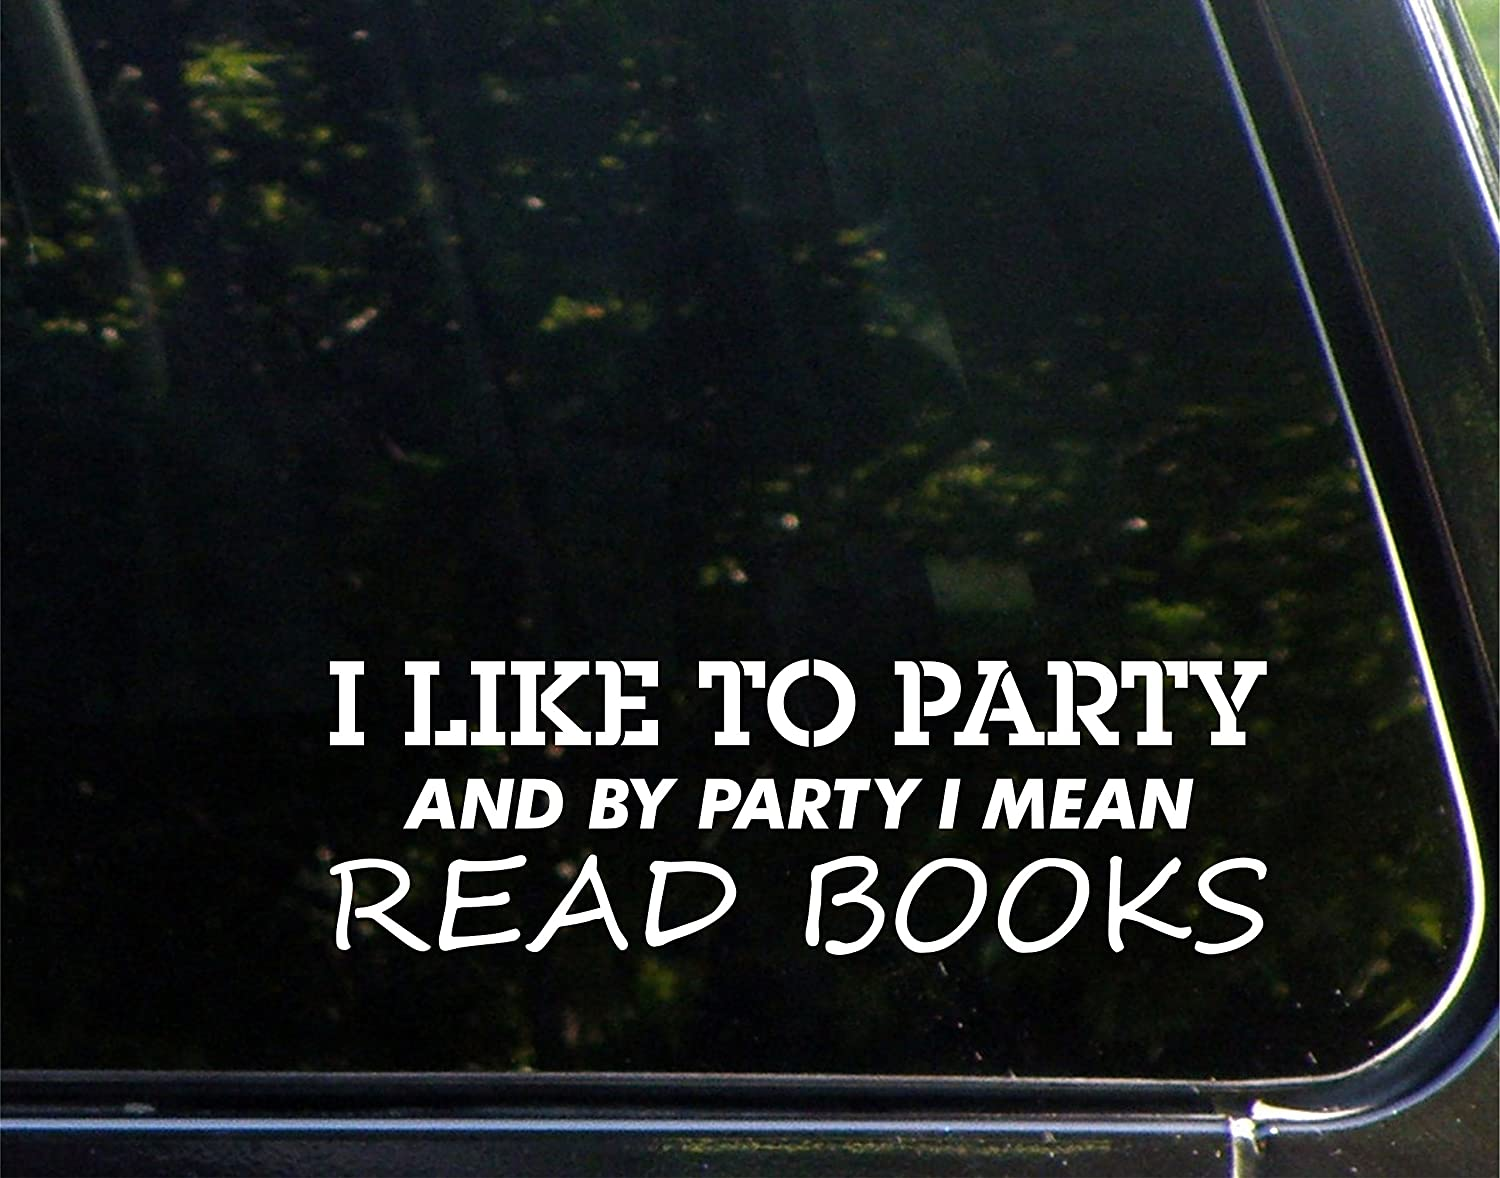 Amazon com i like to party and by party i mean read books 8 3 4 x 2 3 4 vinyl die cut decal bumper sticker for windows cars trucks laptops